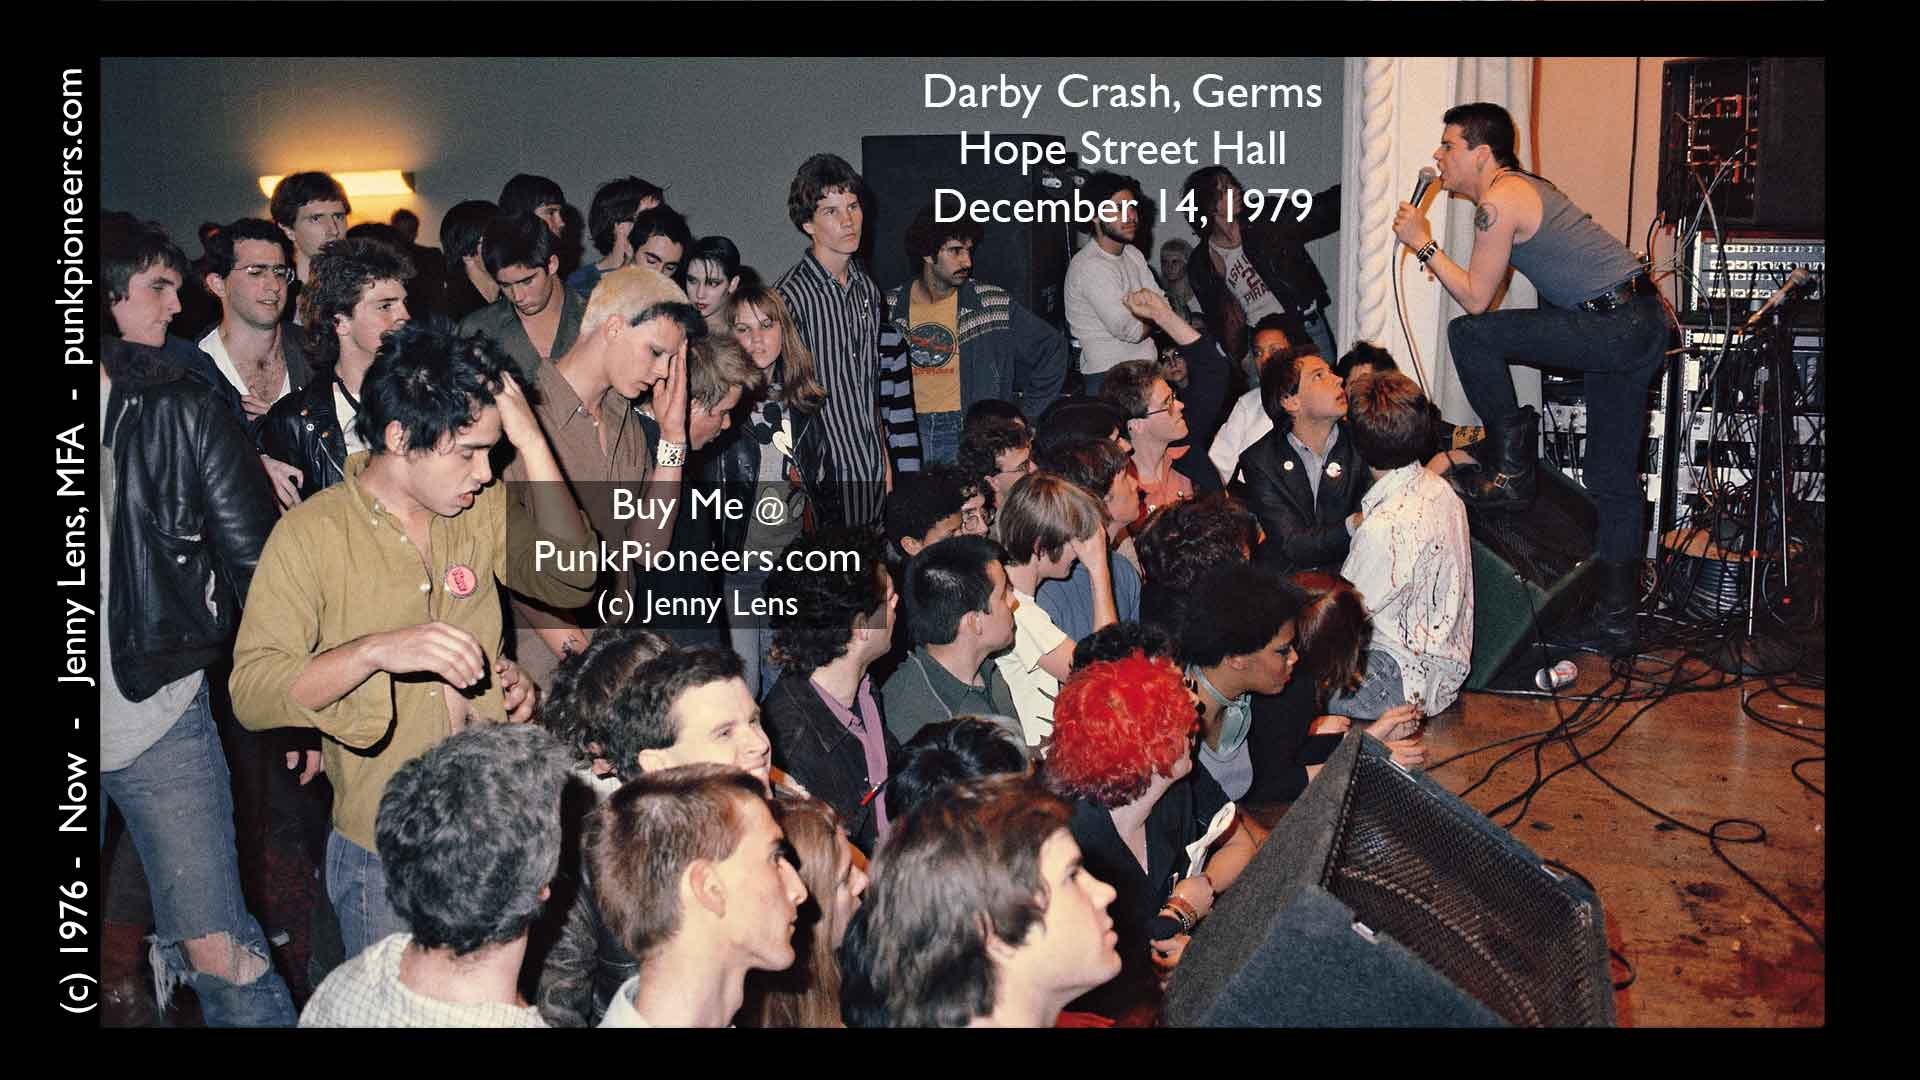 Darby Crash, Germs, Hope Street Hall, December 14, 1979, Jenny Lens, PunkPioneers.com